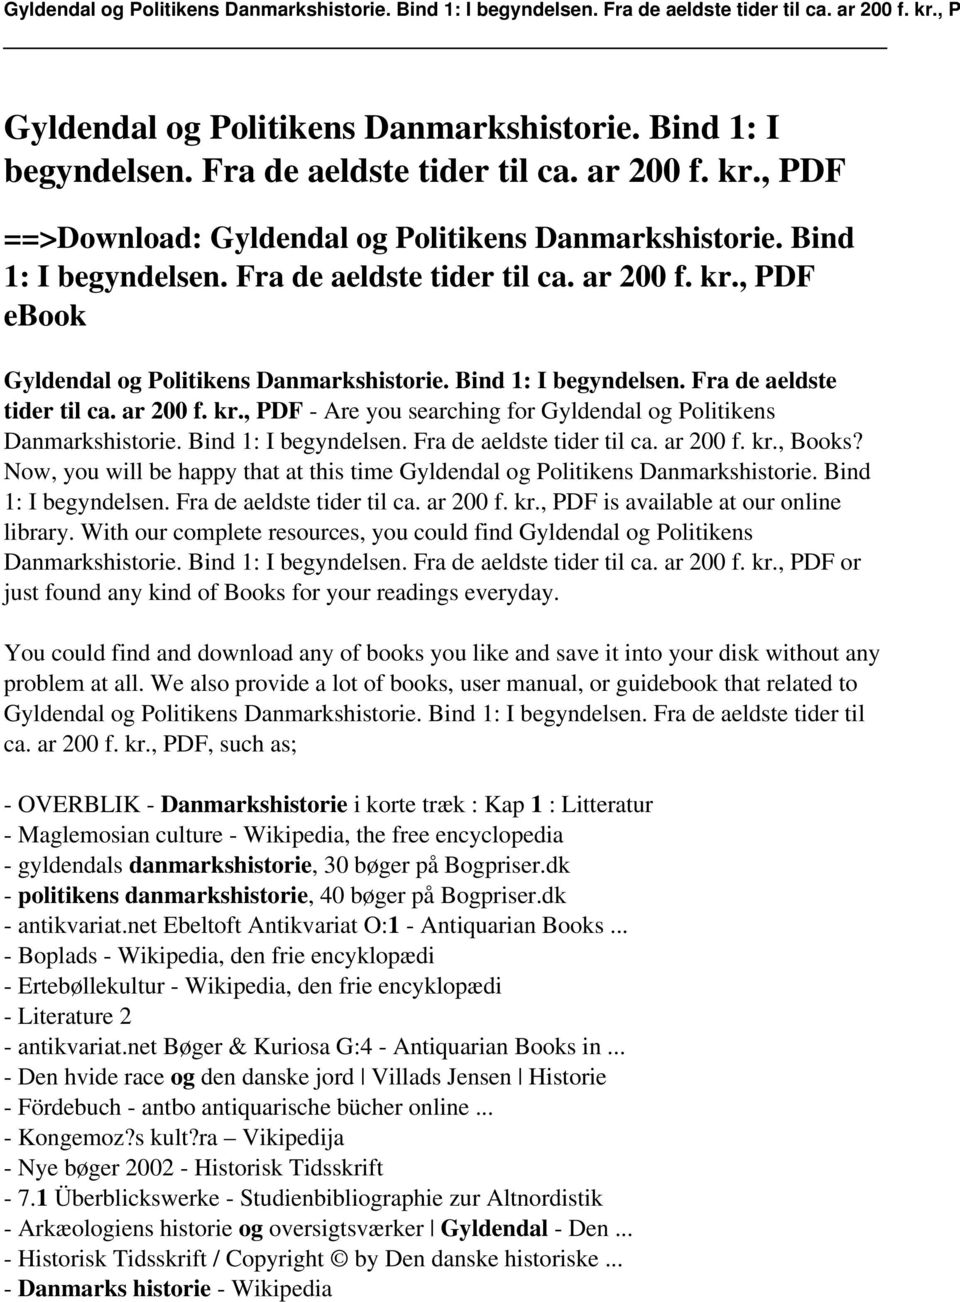 Now, you will be happy that at this time Gyldendal og Politikens Danmarkshistorie. Bind 1: I begyndelsen. Fra de aeldste tider til ca. ar 200 f. kr., PDF is available at our online library.